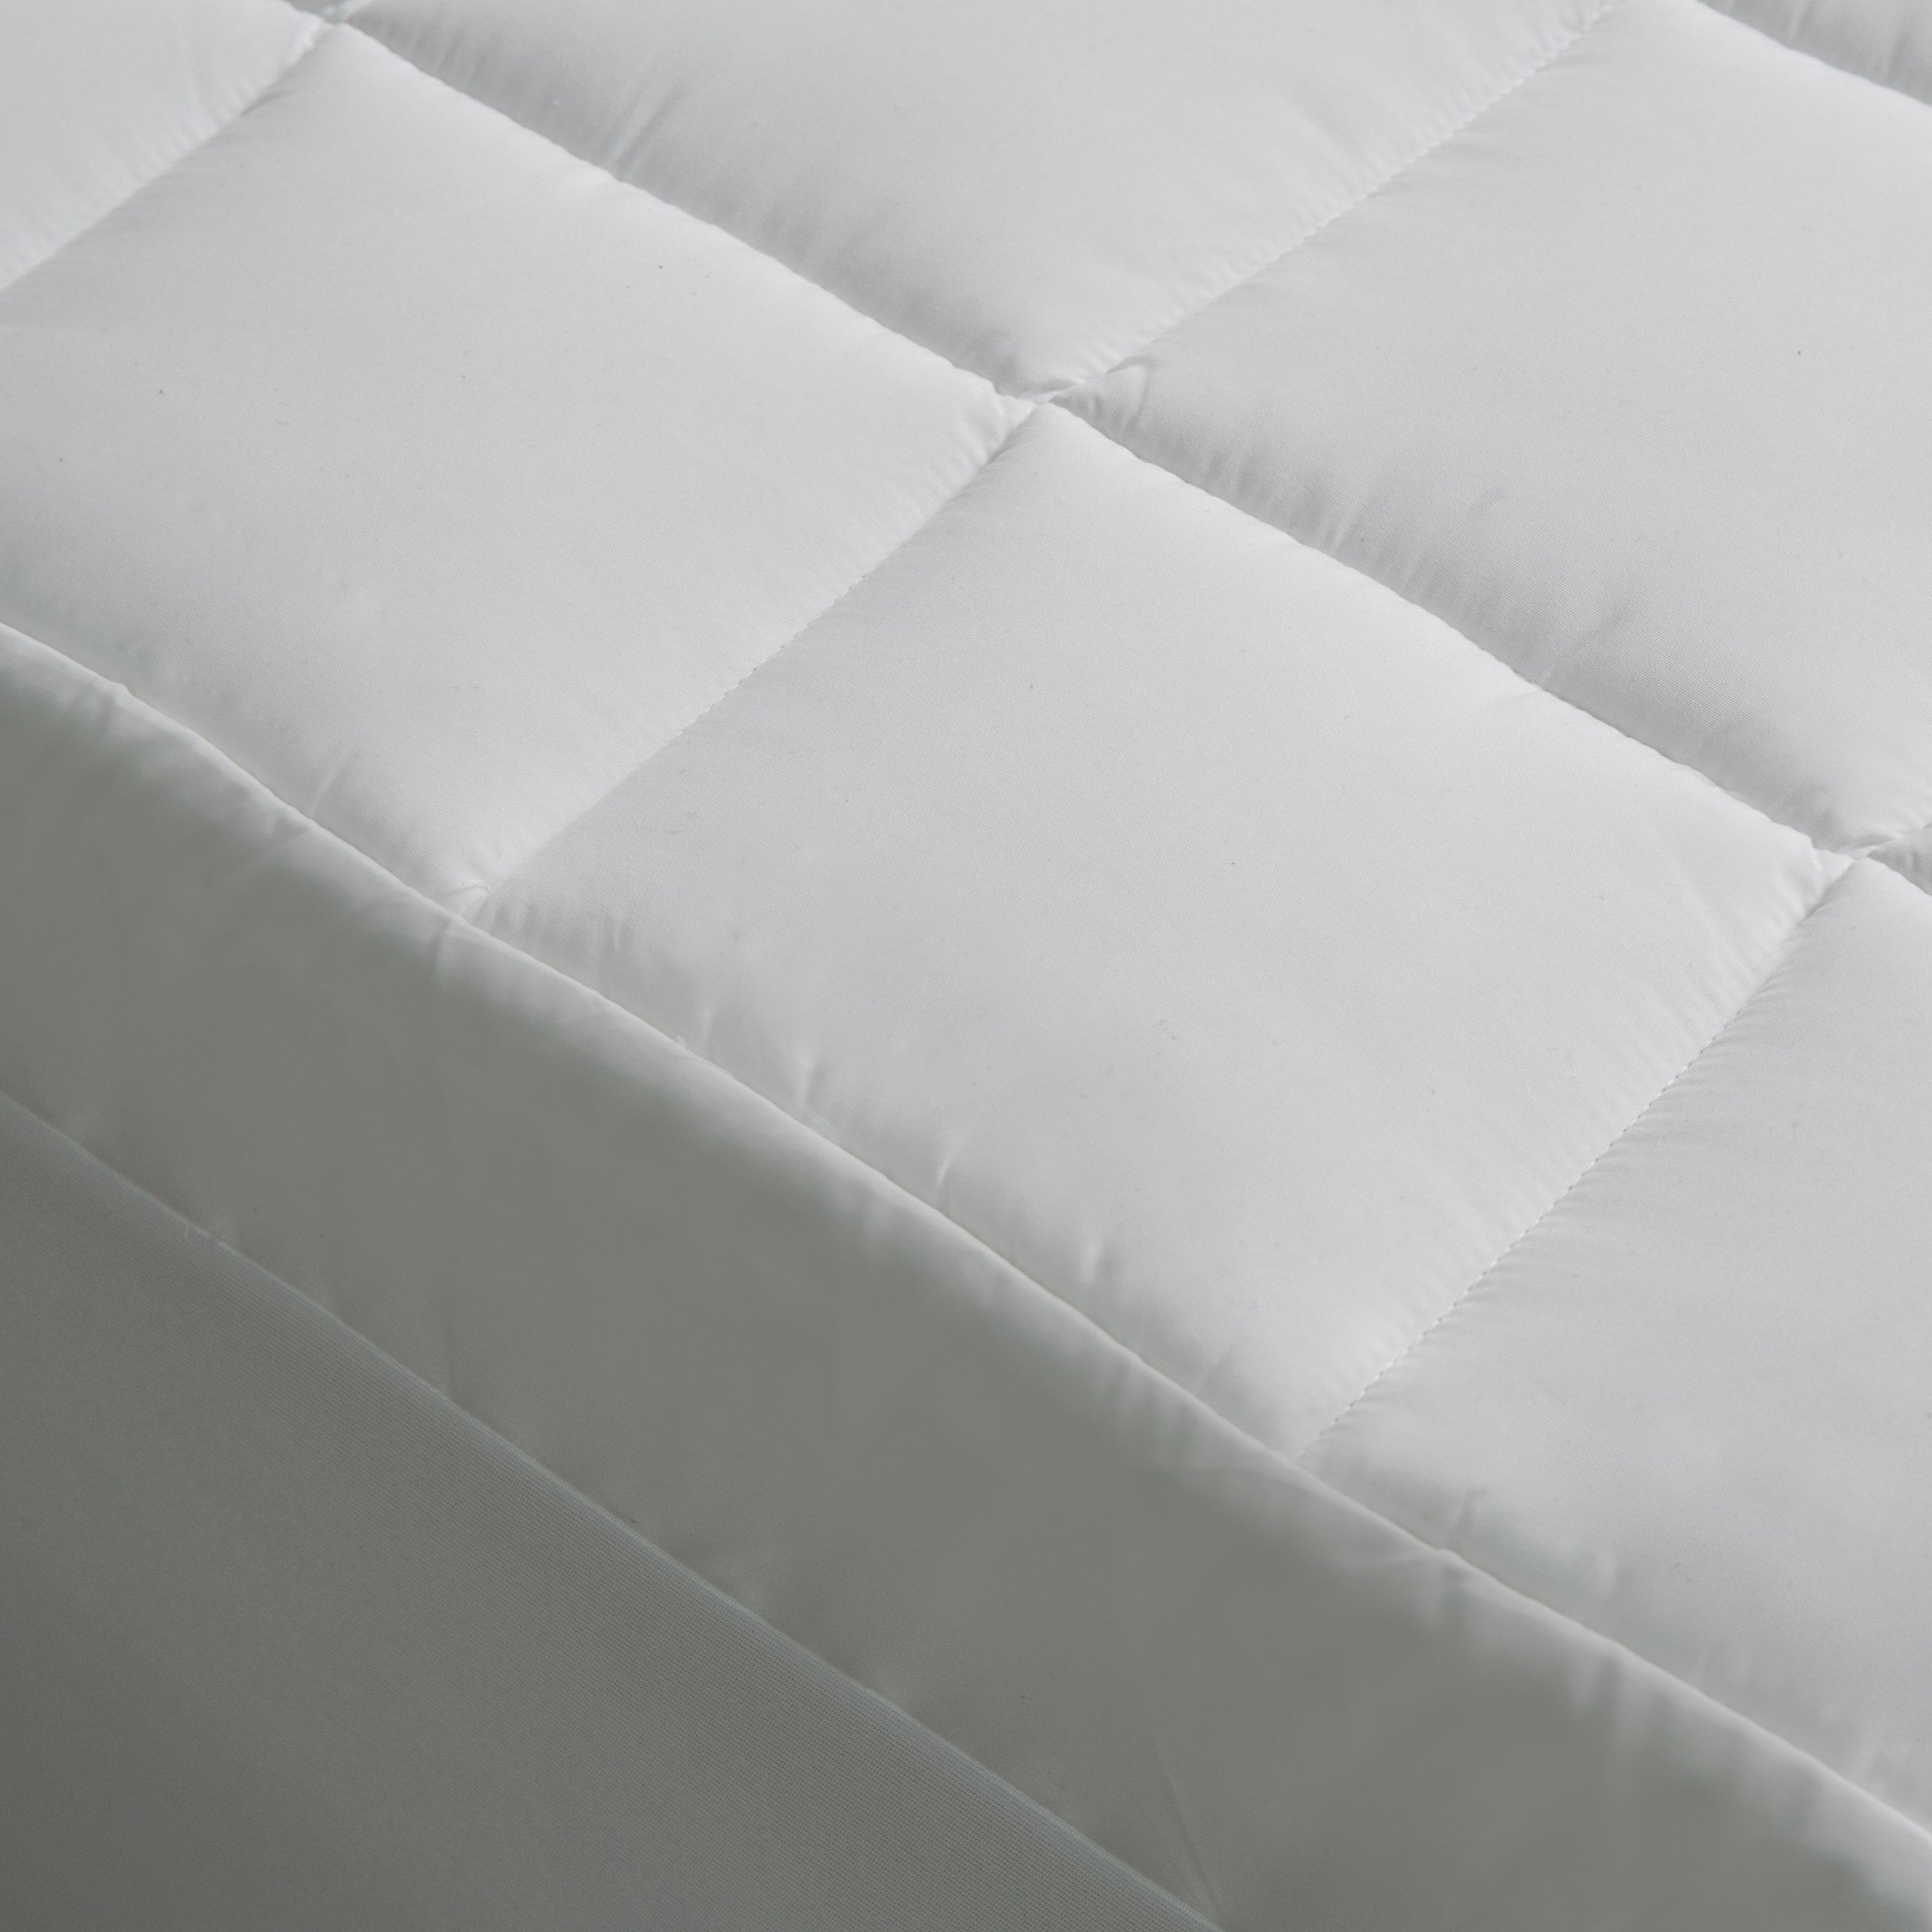 gel pain simmons inch serta mattress me lucid size innovations foam curv awesome best and sculpted sleep modern ventilated suretemp full for memory bewitch walmart com topper fiber i of wonderful back novaform toppers